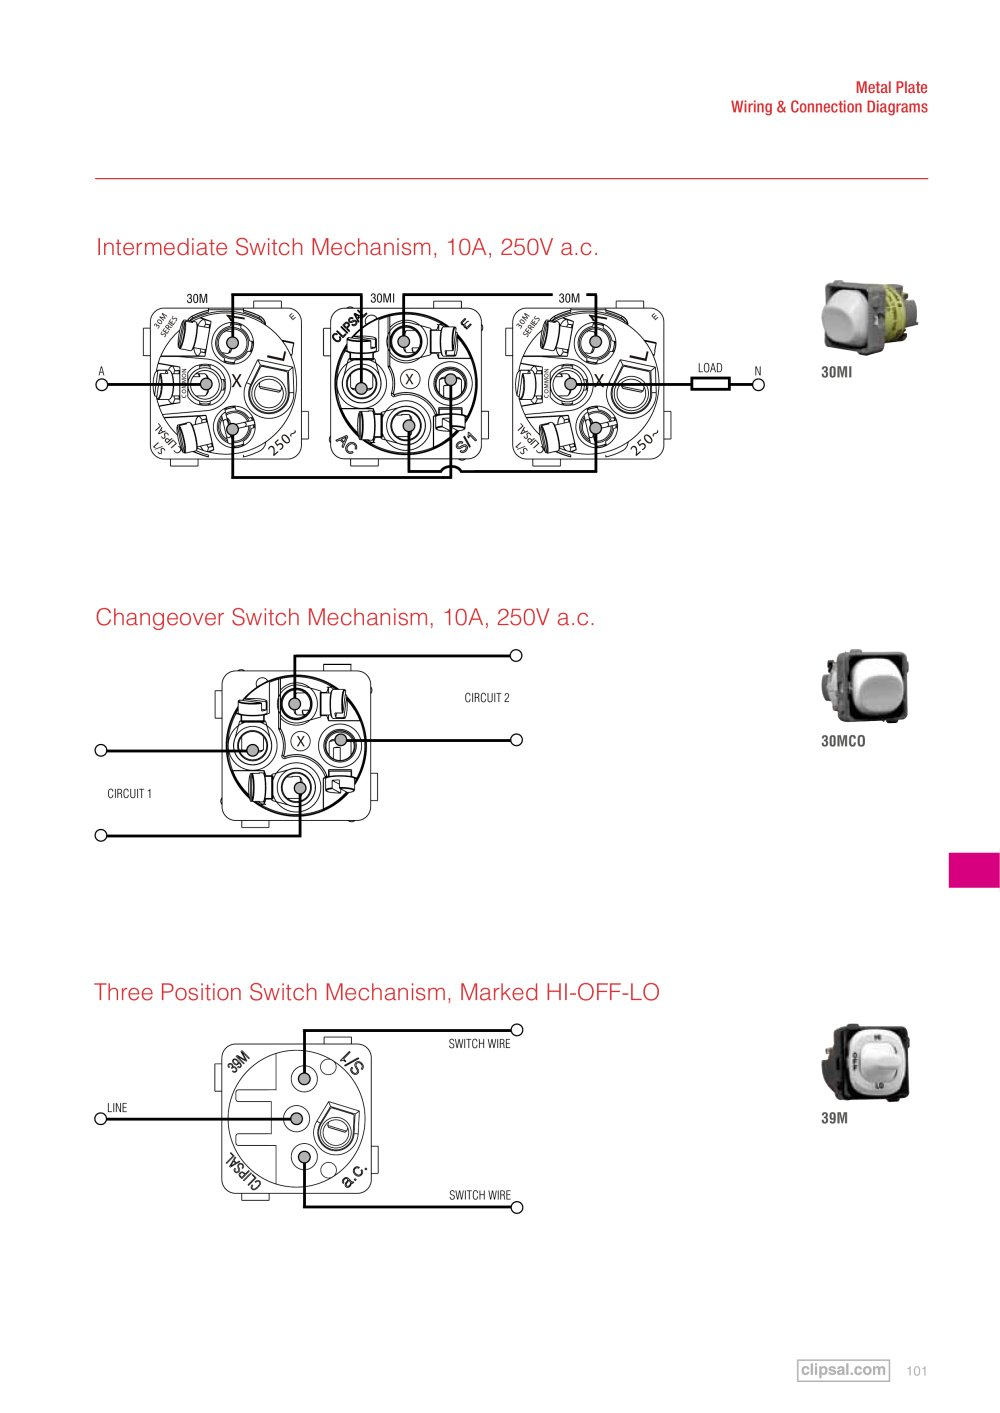 clipsal dimmer wiring diagram dolgularcom cause of water pollution, Wiring diagram